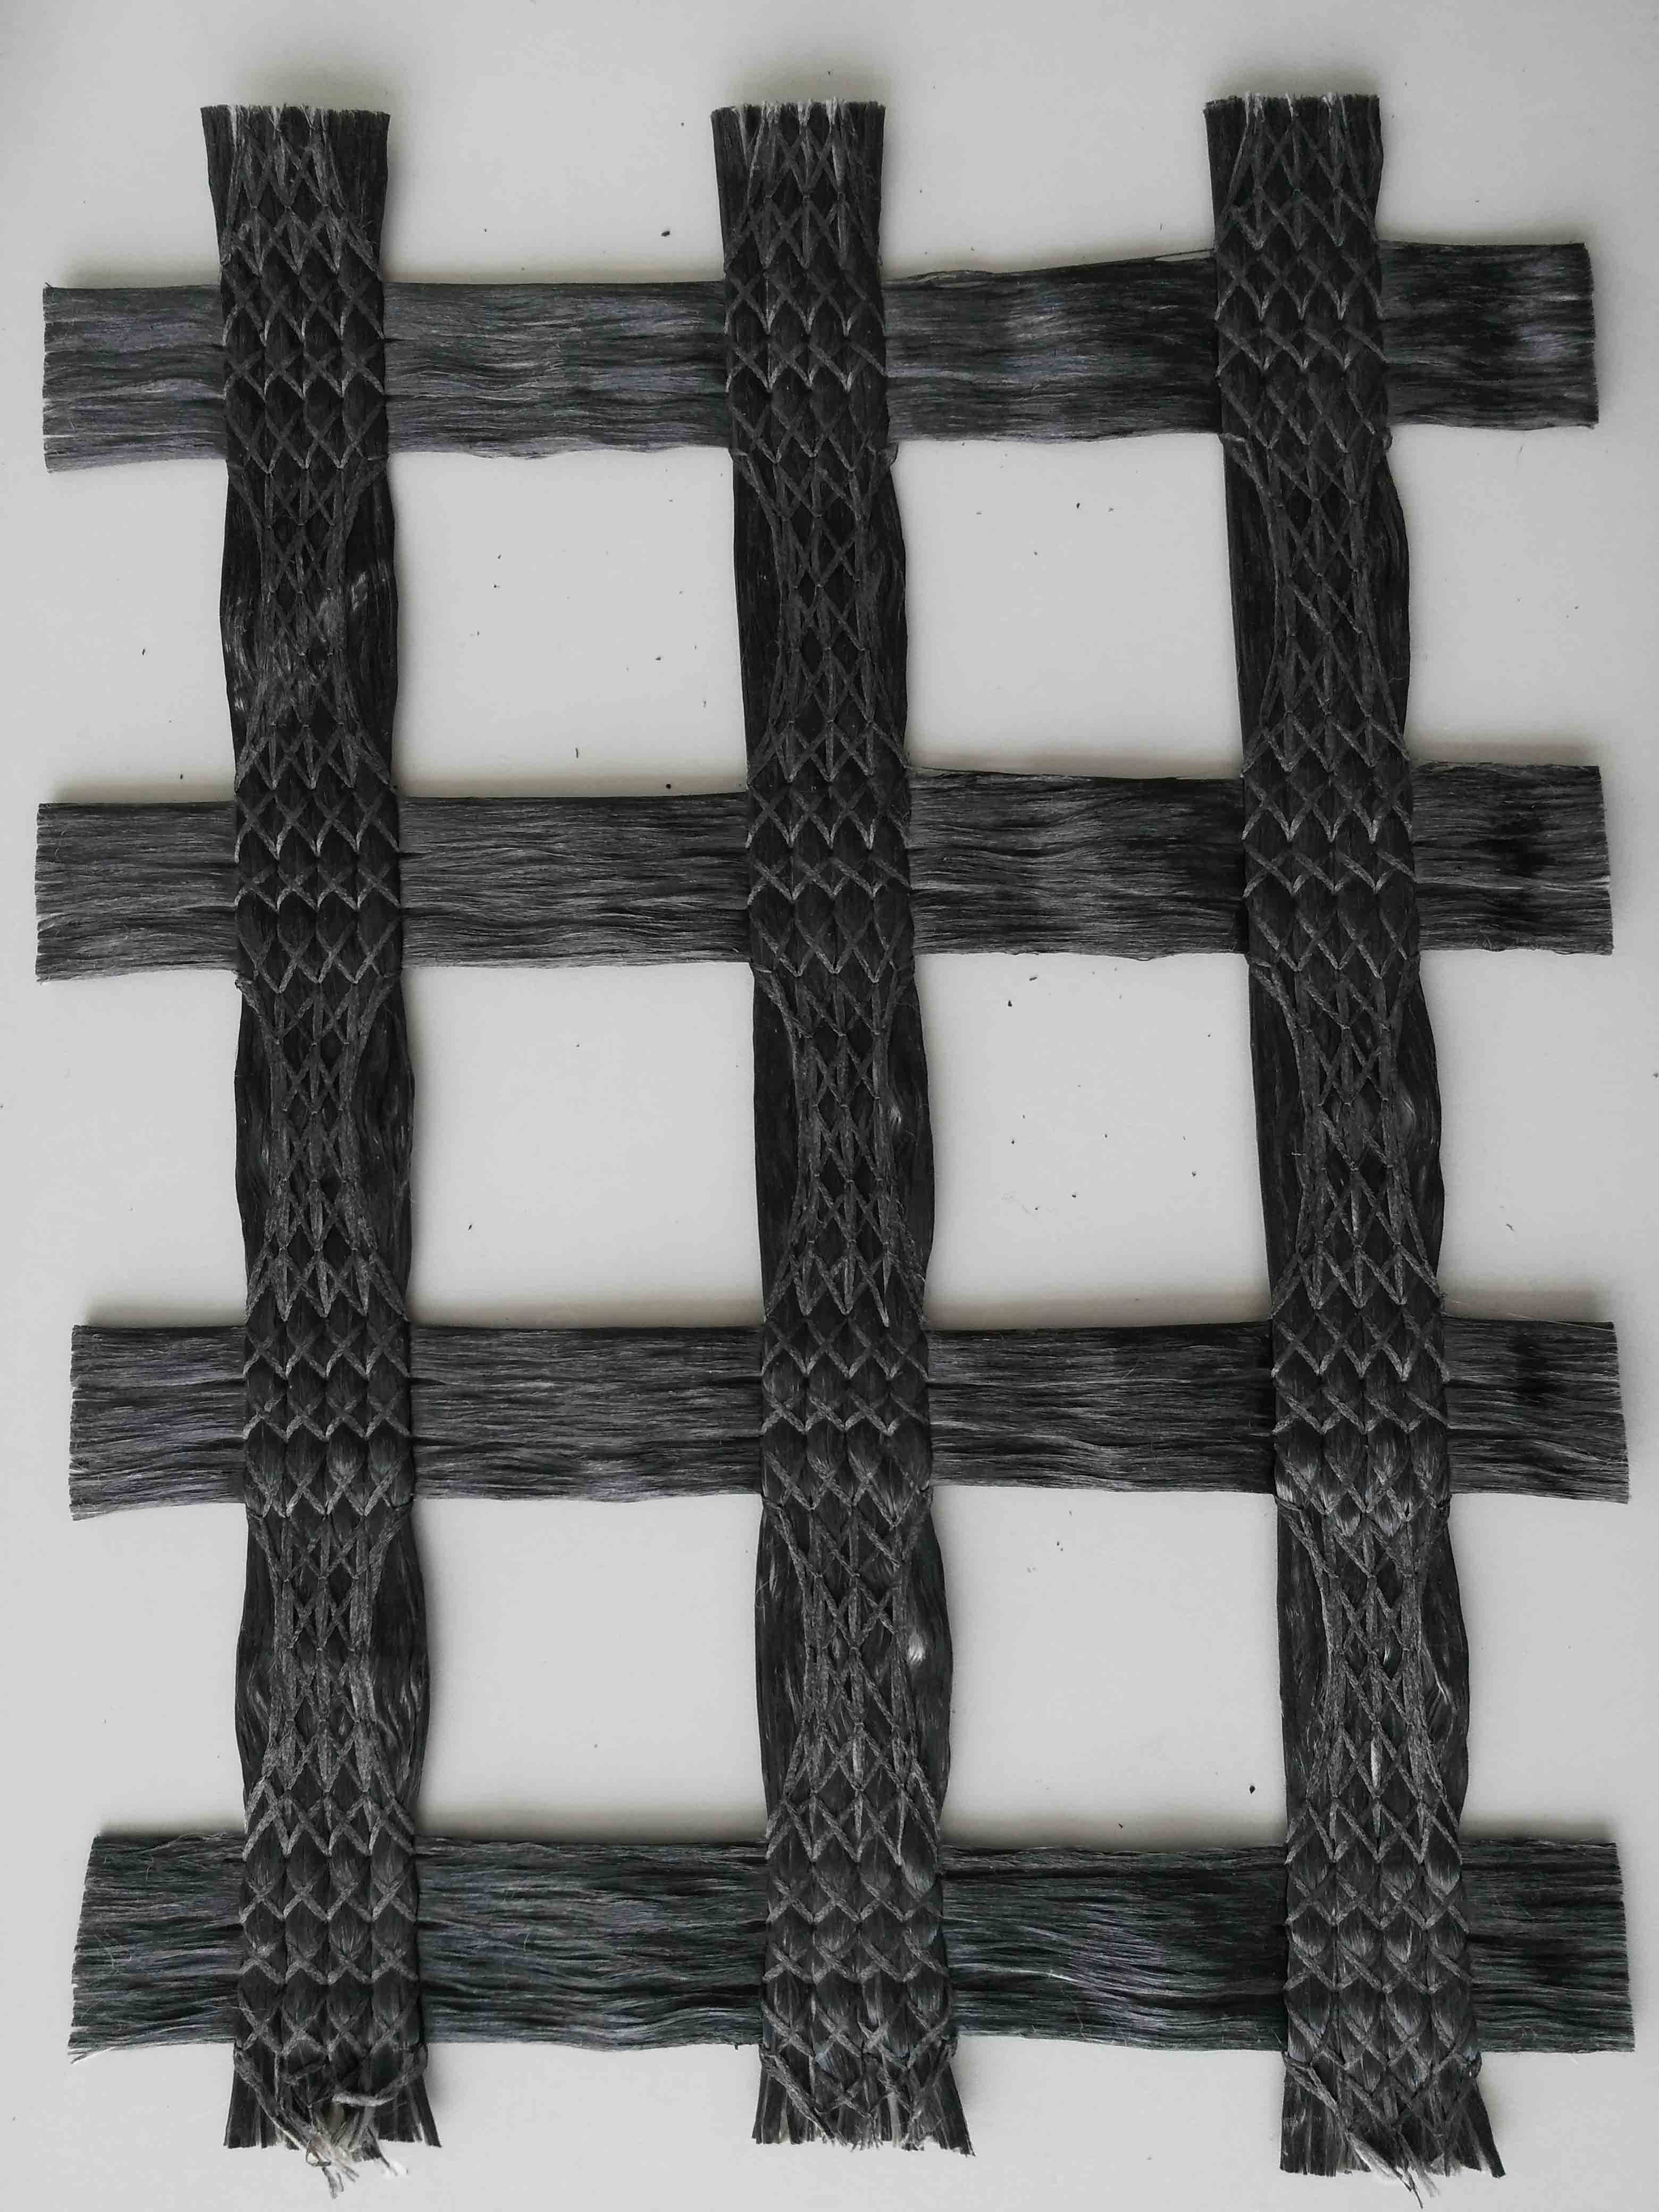 WARP KNITTED POLYESTER GEGRID